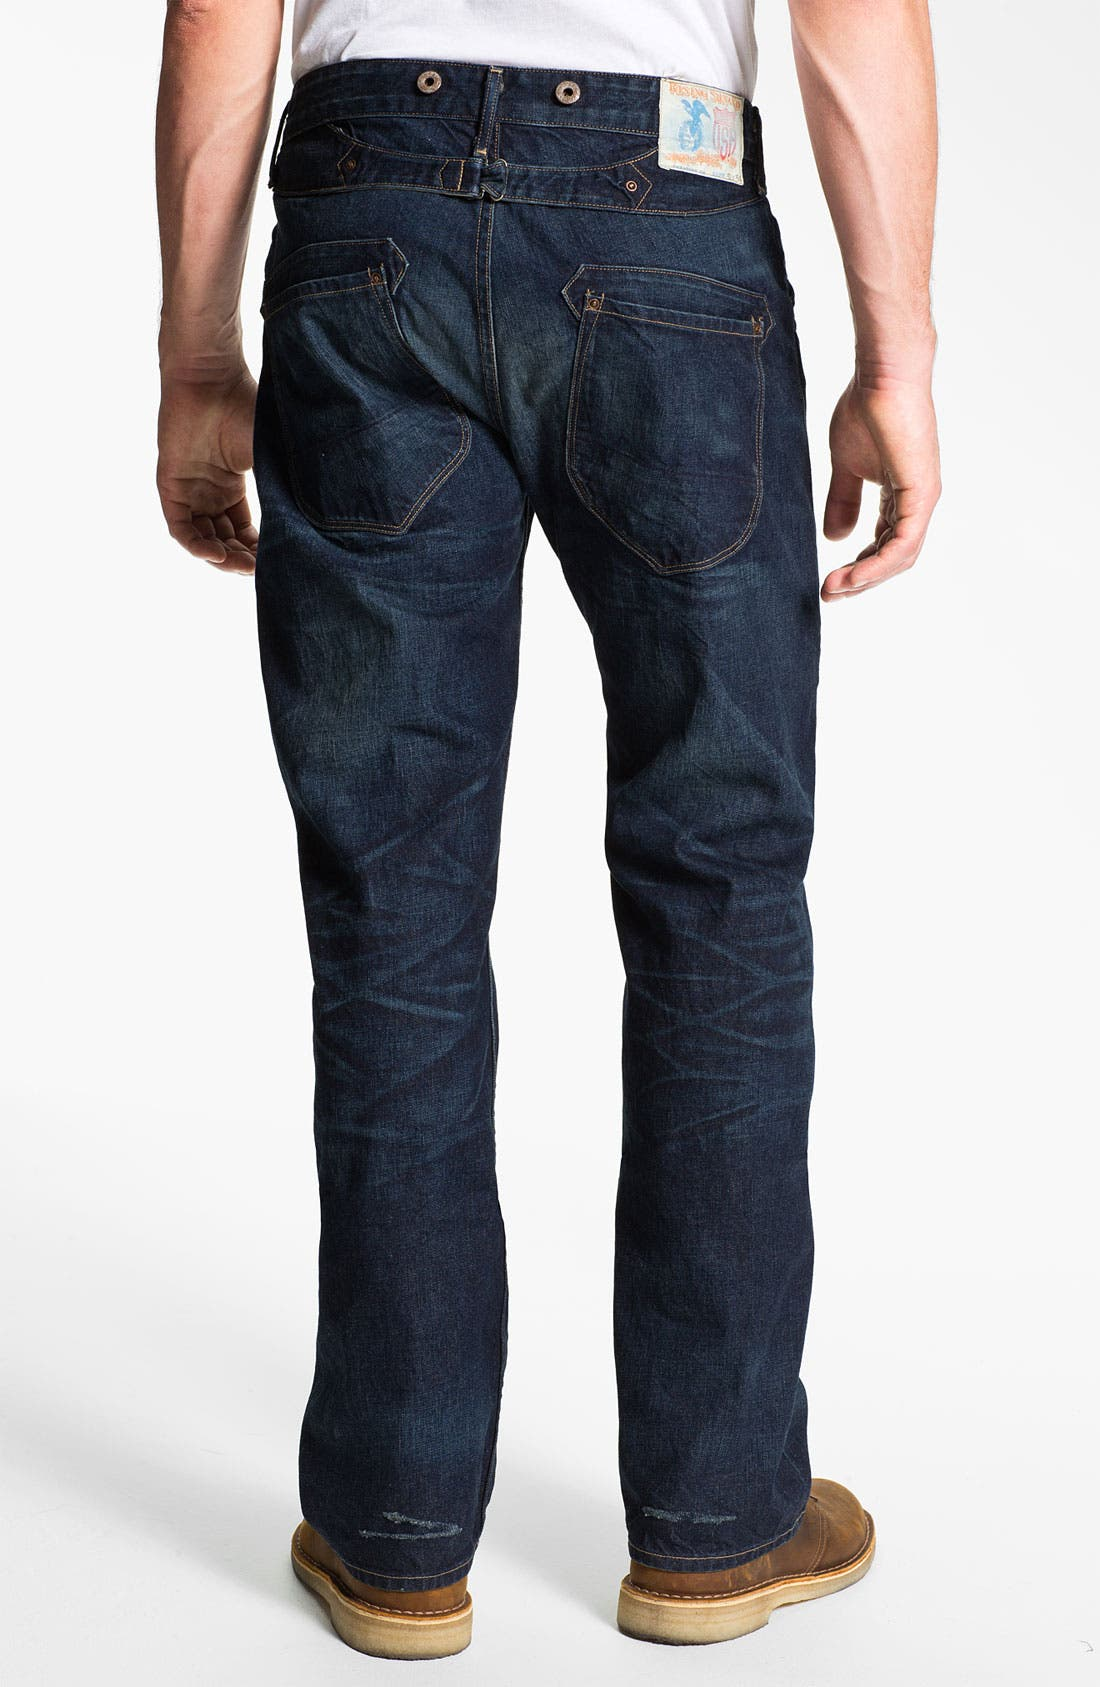 RISING SUN 'Blacksmith' Relaxed Straight Leg Jeans, Main, color, 401